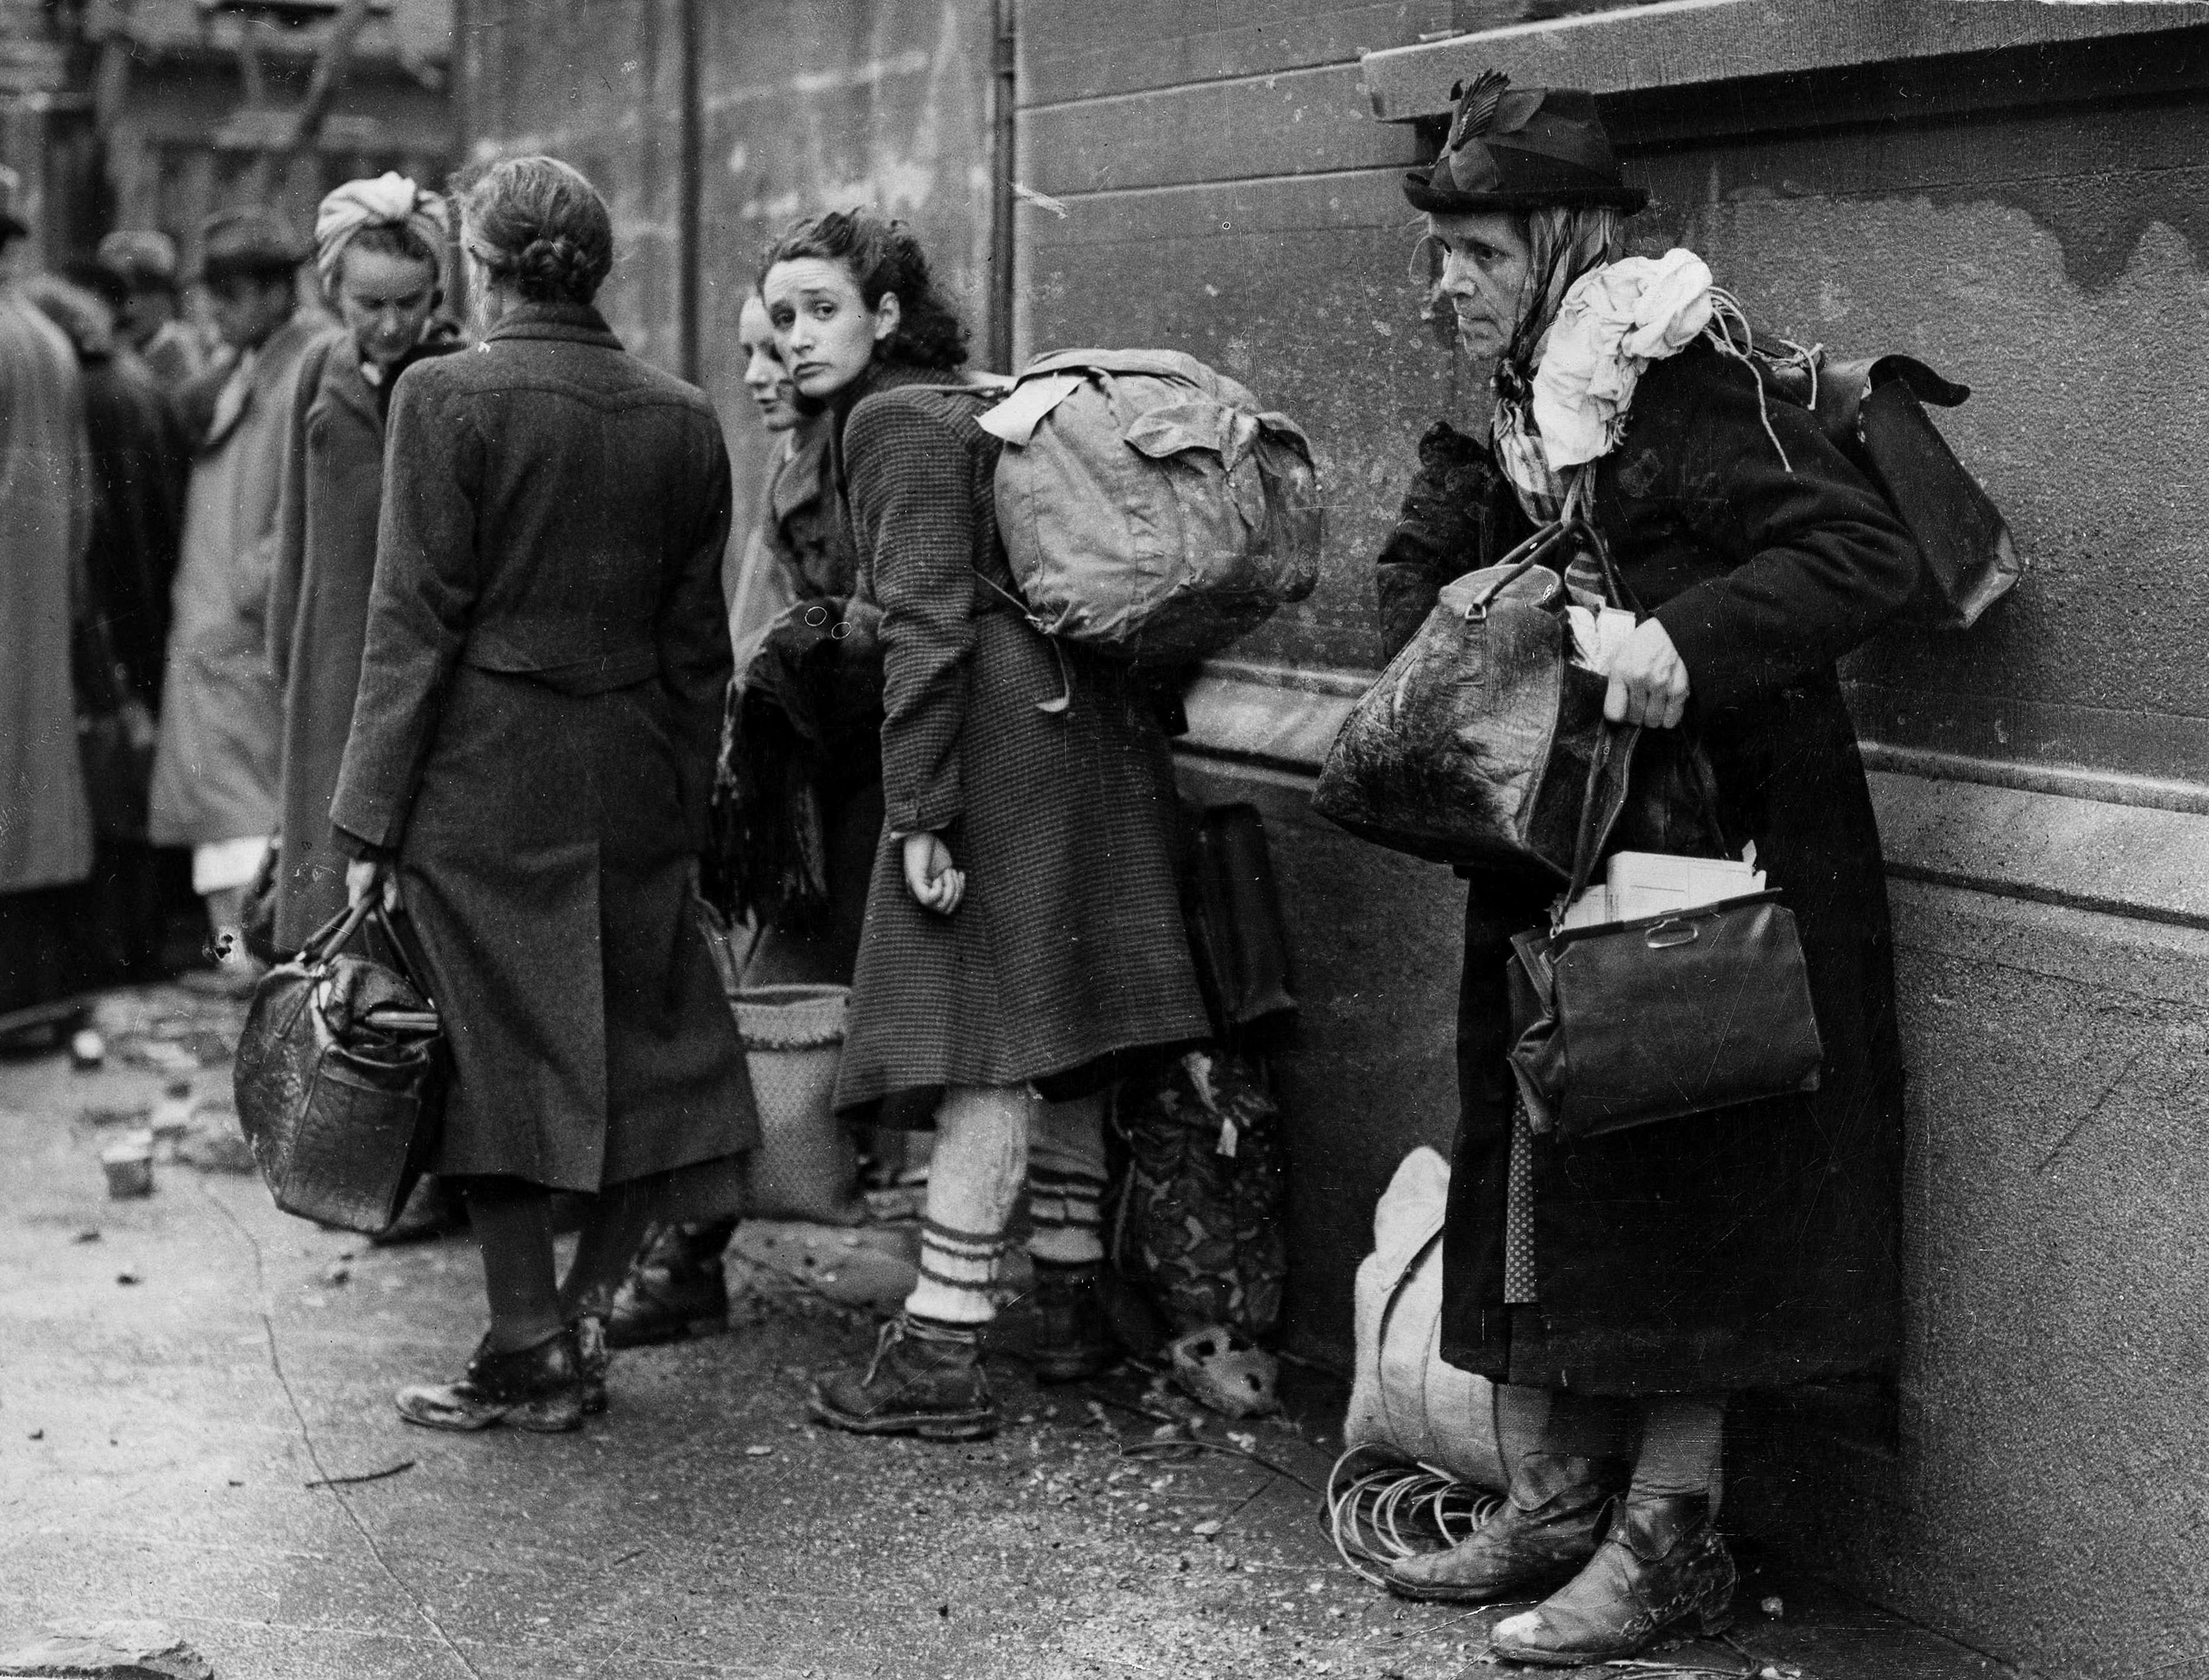 German civilian refugees prepare to flee war-torn Aachen, Germany as the battle for the doomed city draws to a close, Oct. 24, 1944.